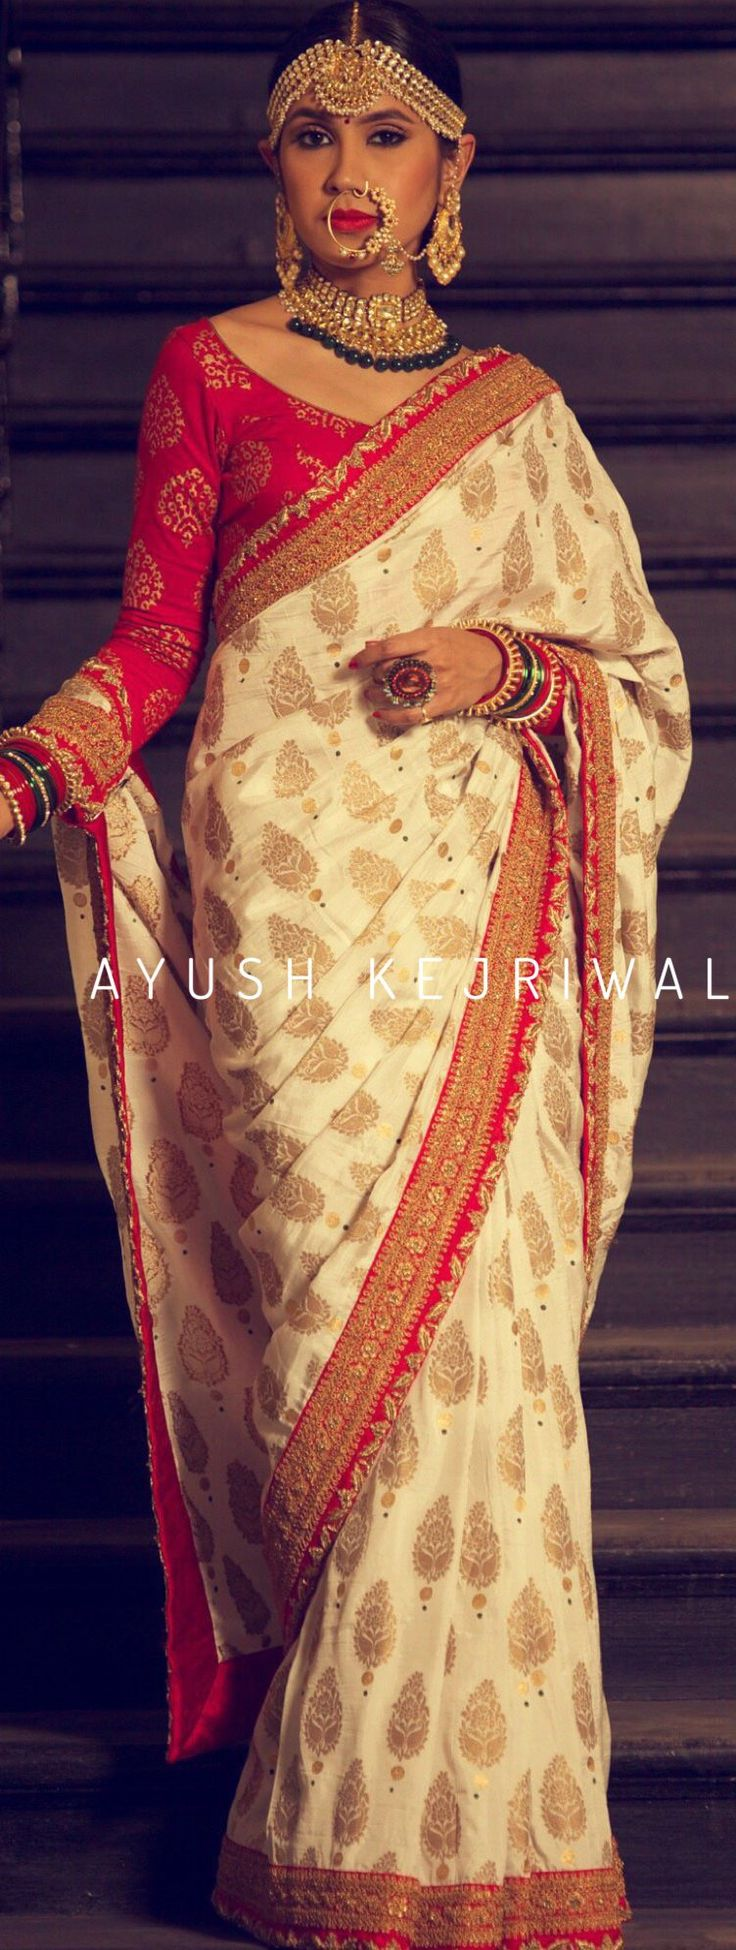 Bridal Saree by Ayush Kejriwal For purchase enquires email me at ayushk@hotmail.co.uk or whats app me on 00447840384707. We ship WORLDWIDE.